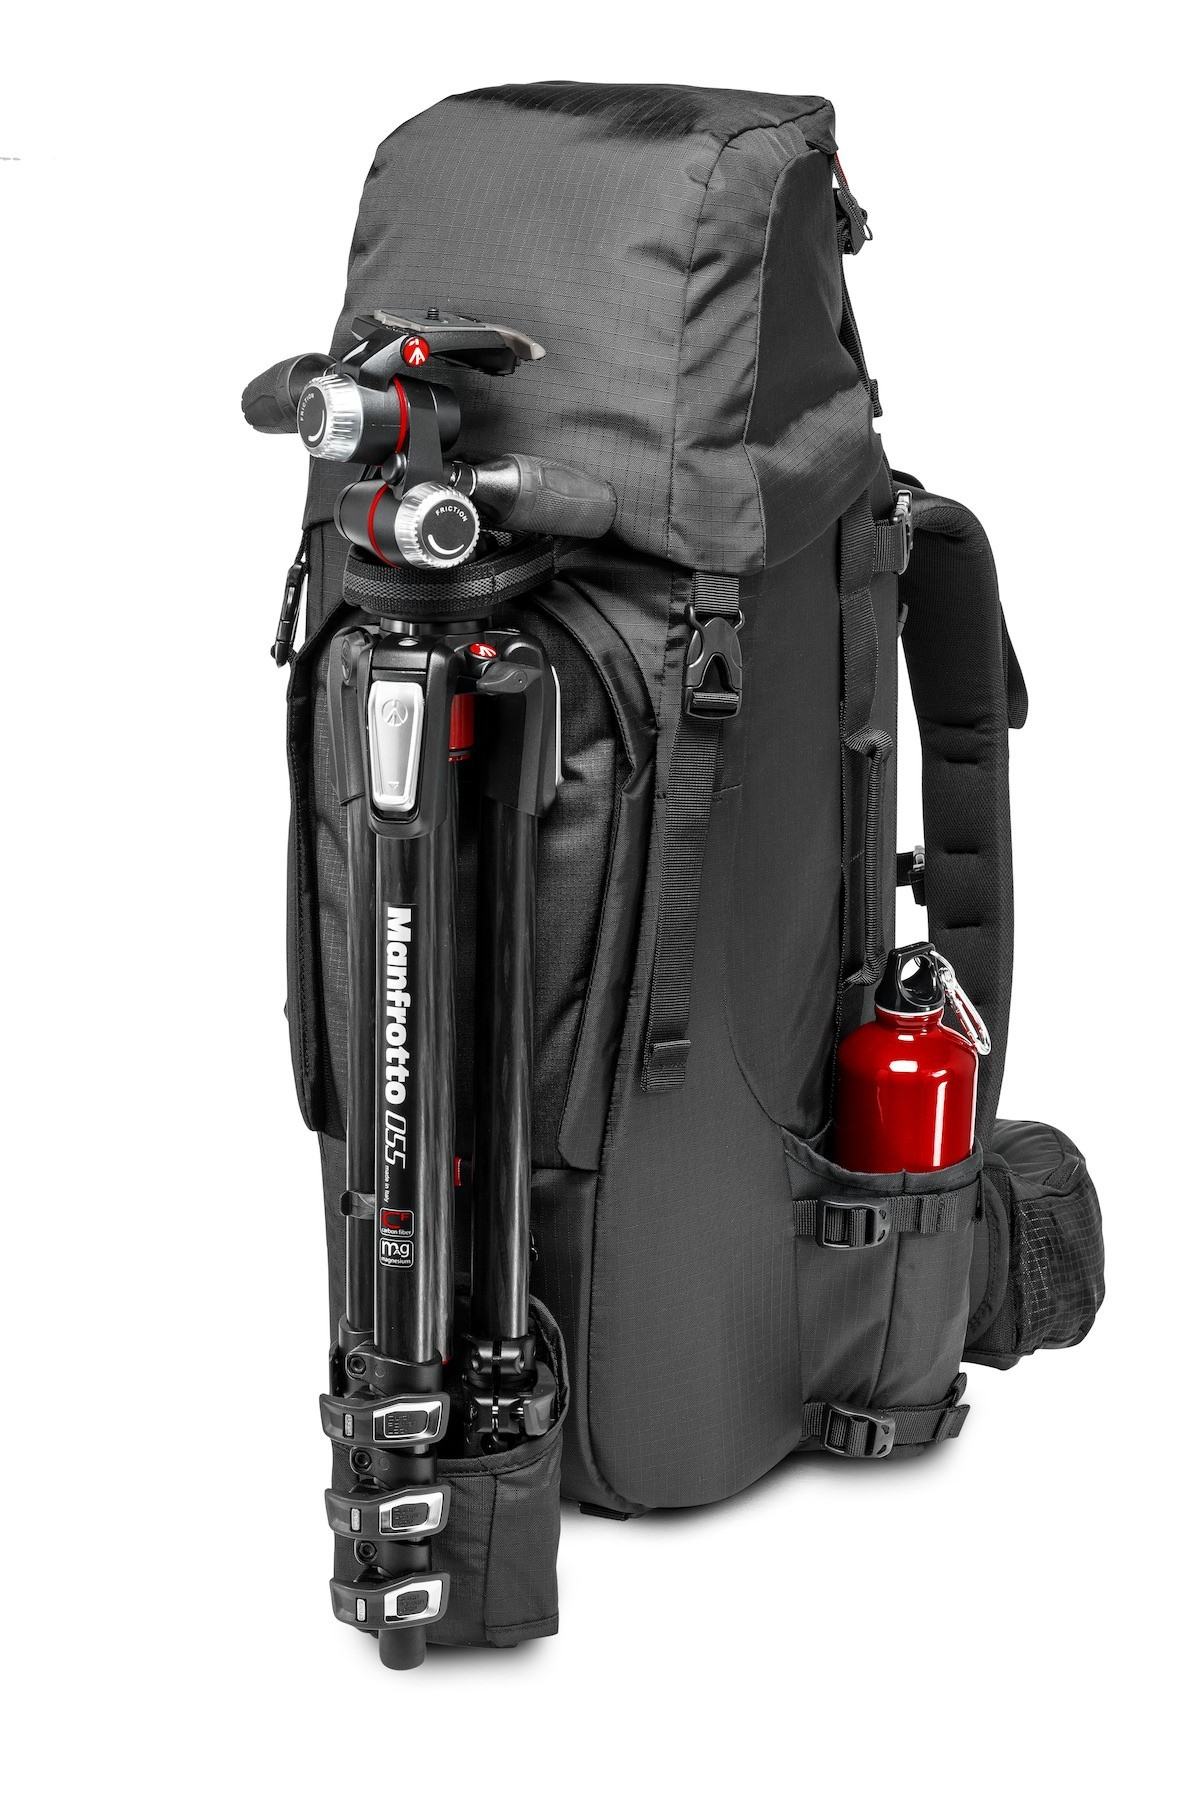 Manfrotto MB PL-TLB-600 Pro Light